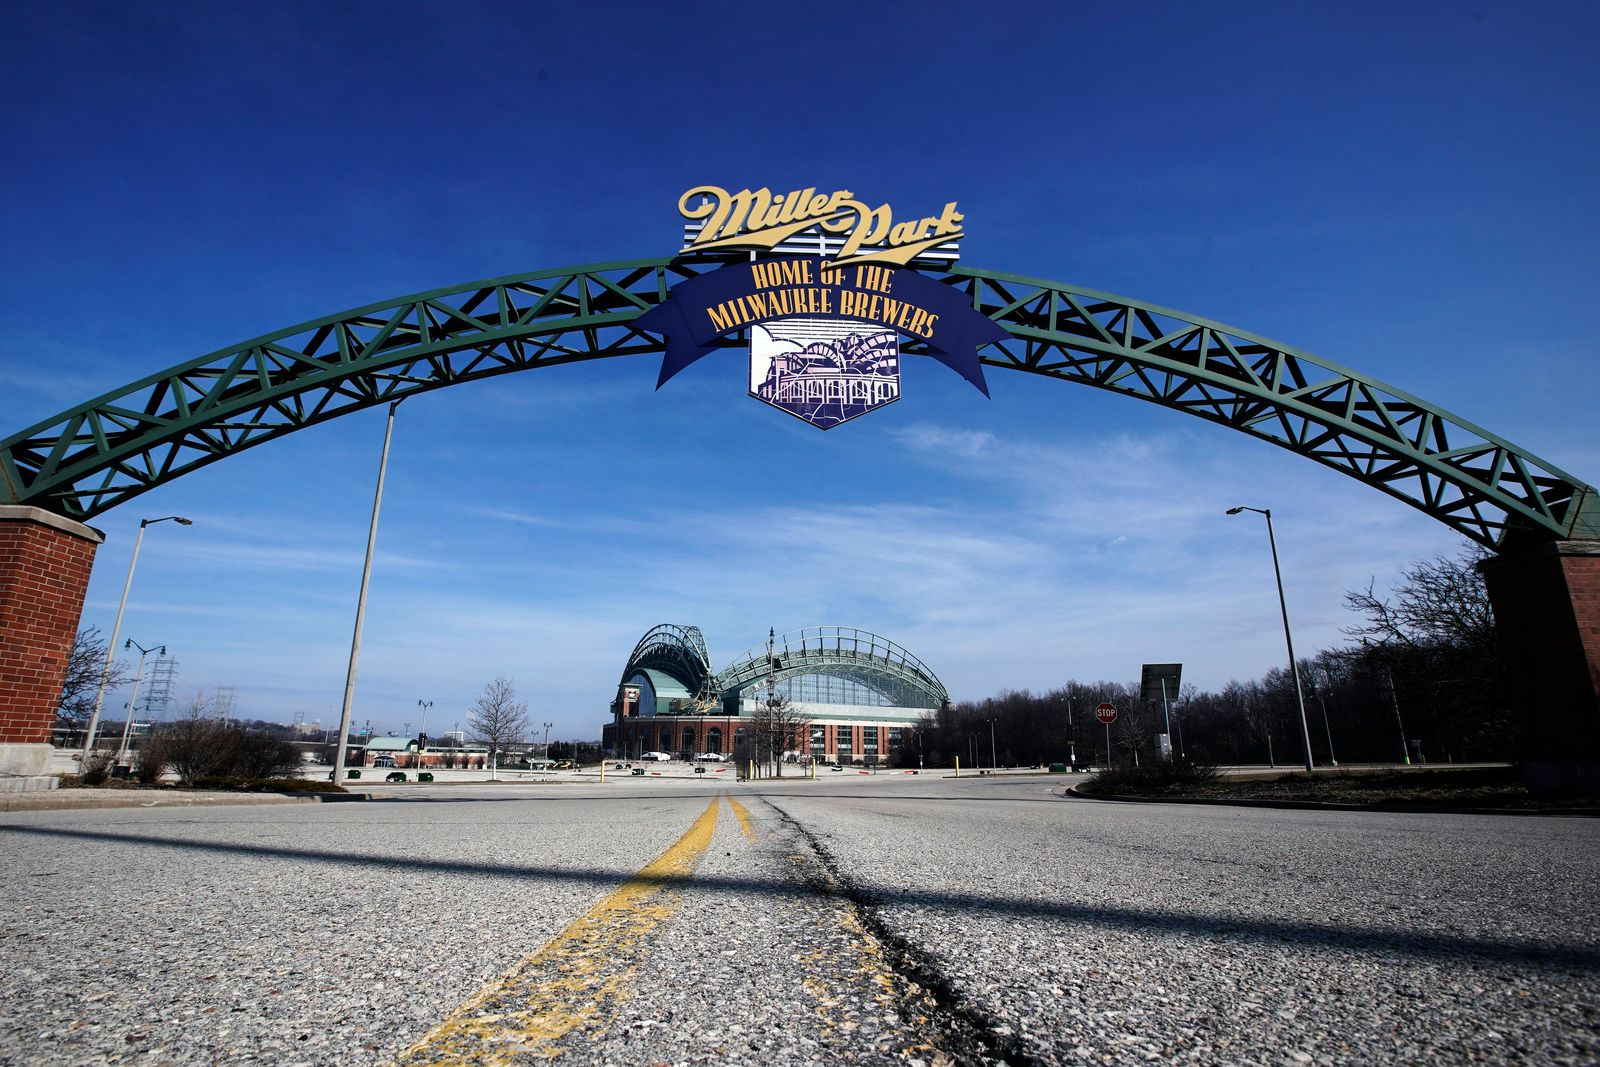 FILE - In this March 24, 2020, file photo, Miller Park is seen in Milwaukee. The Brewers were supposed to host Opening Day on Thursday, March 26, 2020, but the season start was postponed by Major League Baseball because of the coronoavirus pandemic. (AP Photo/Morry Gash, File)